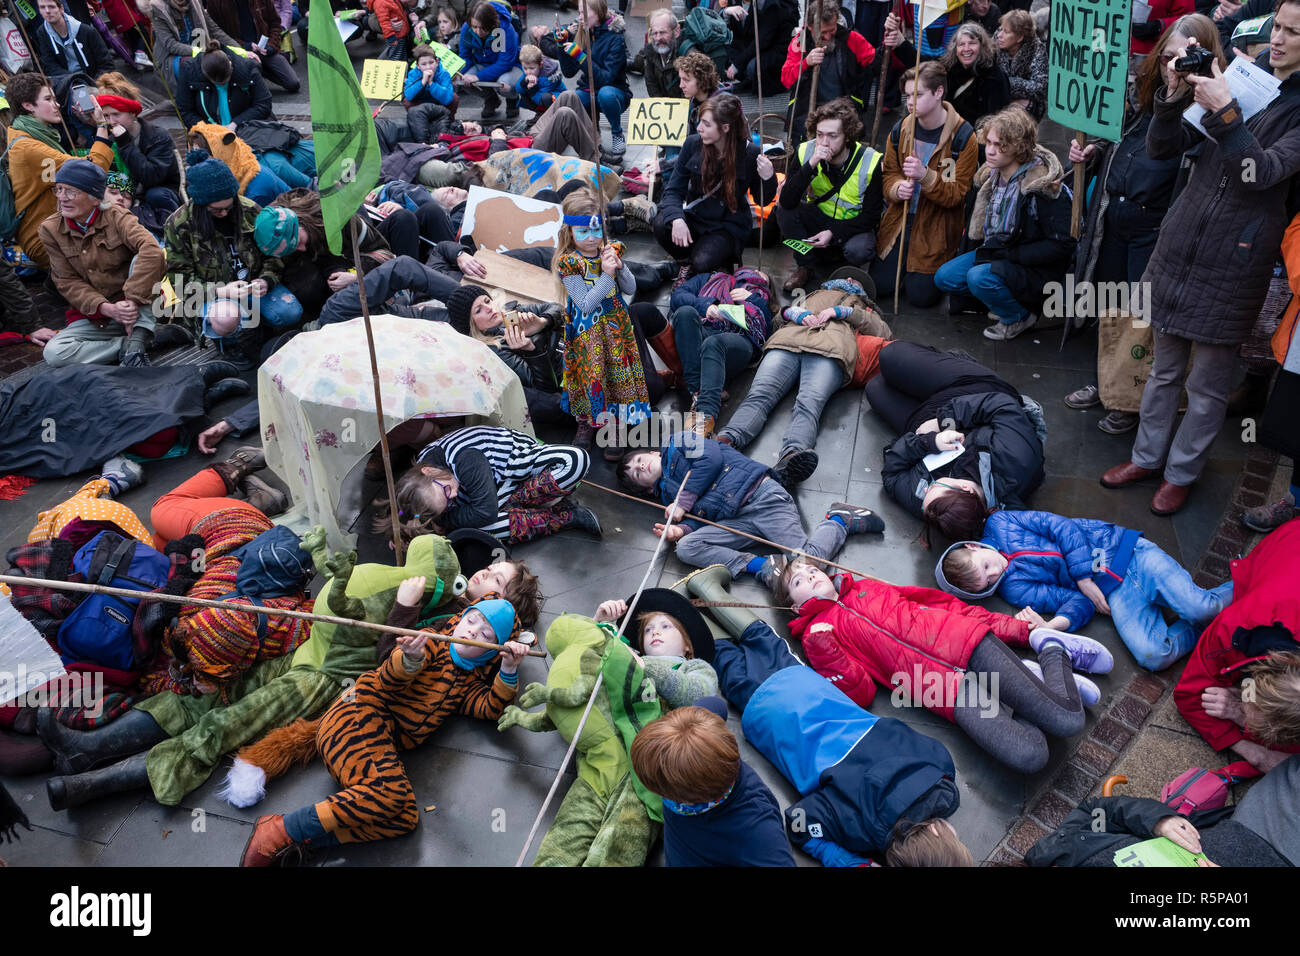 Hereford, UK. 1st December, 2018. Local children stage an 'extinction event' or die-in at a demonstration organised by the Extinction Rebellion movement (climate change activists) in this old cathedral city . Credit: Alex Ramsay/Alamy Live News - Stock Image